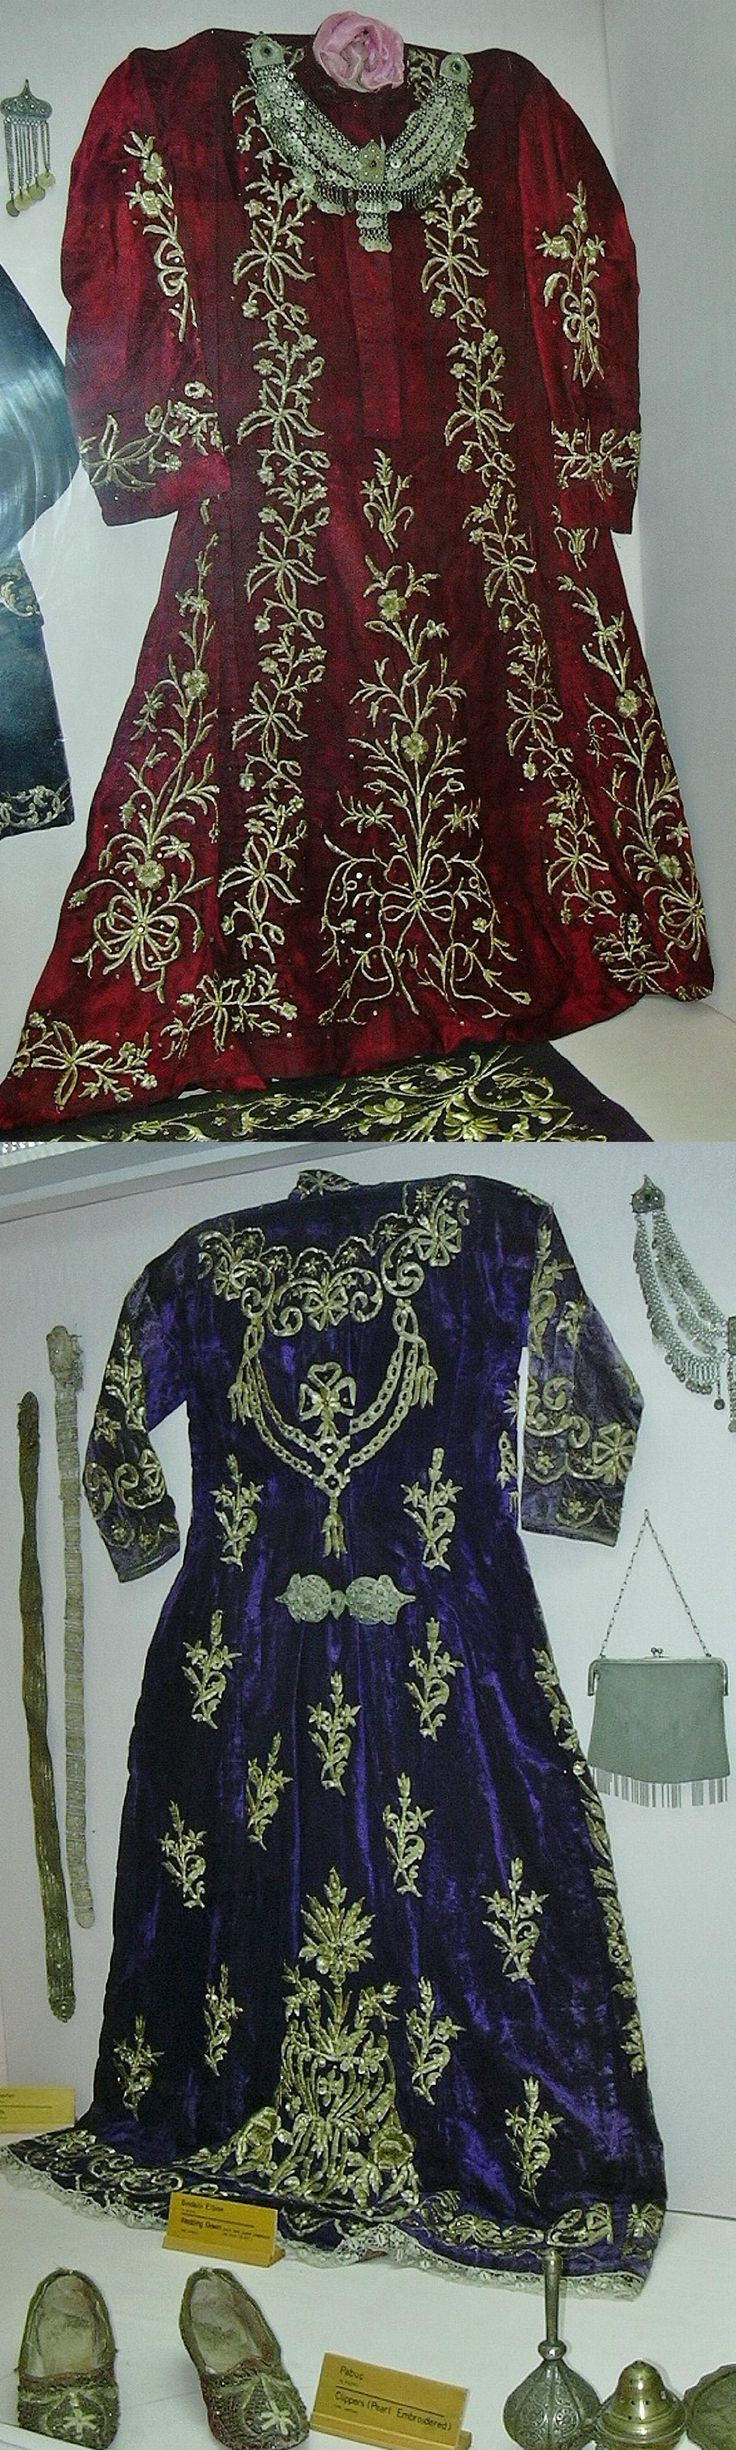 Two bridal/festive embroidered 'entari' (robe).  Urban style, late 19th century.  On exhibit (2003) in the Yalvaç Museum (Isparta province).  (Picture: J.M. Criel – Archives of Kavak/Antwerpen).